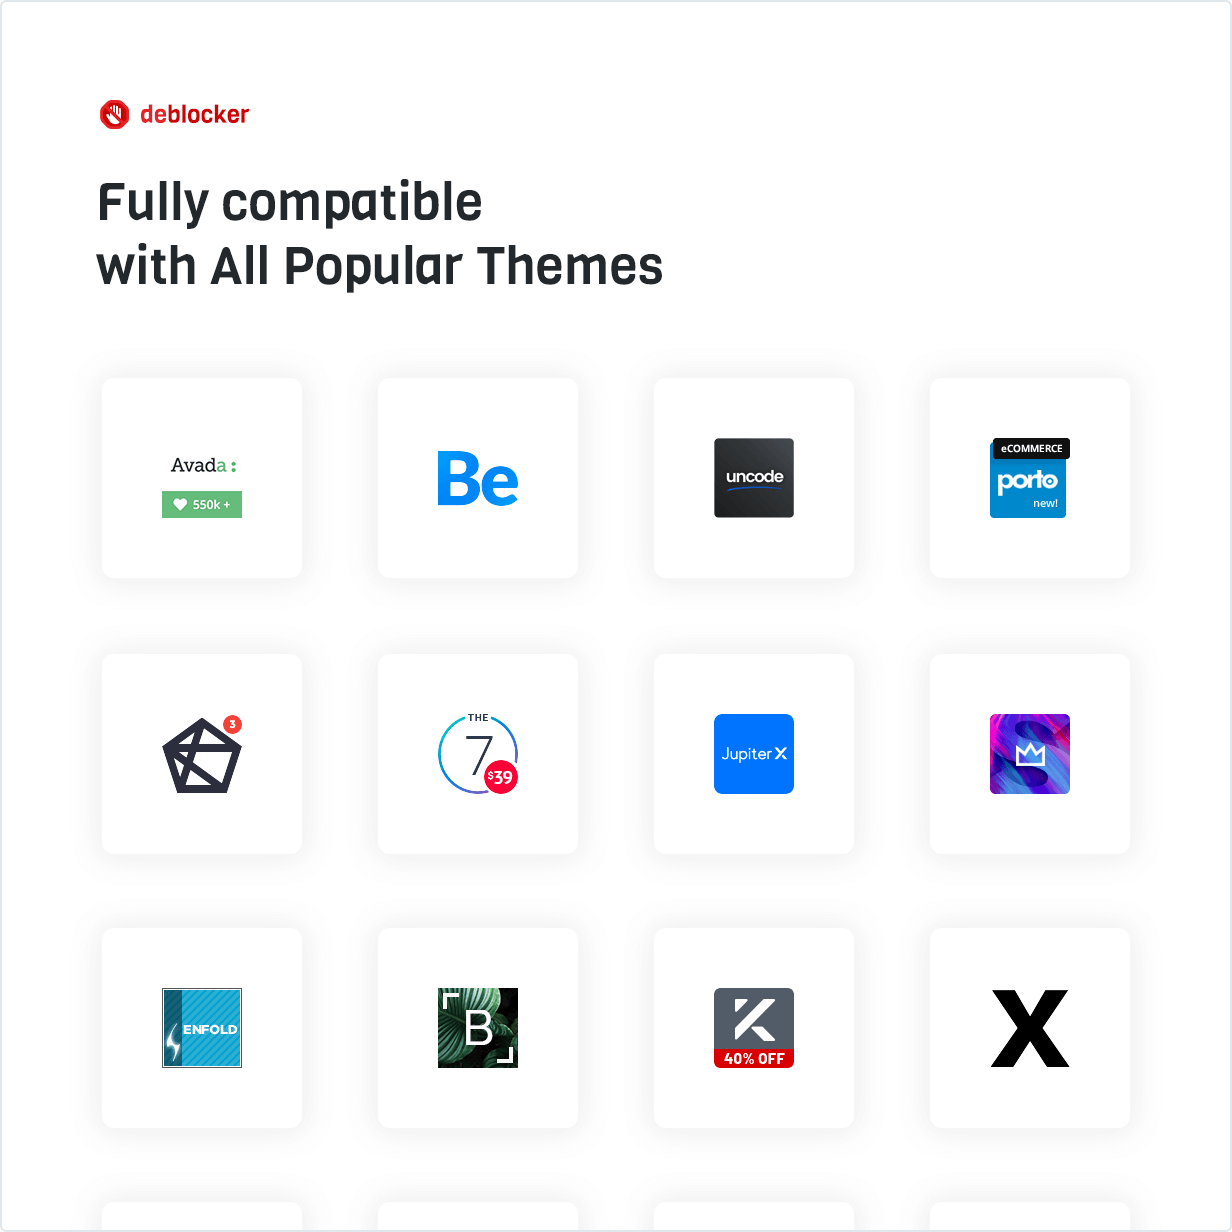 Fully compatible with All Popular Themes